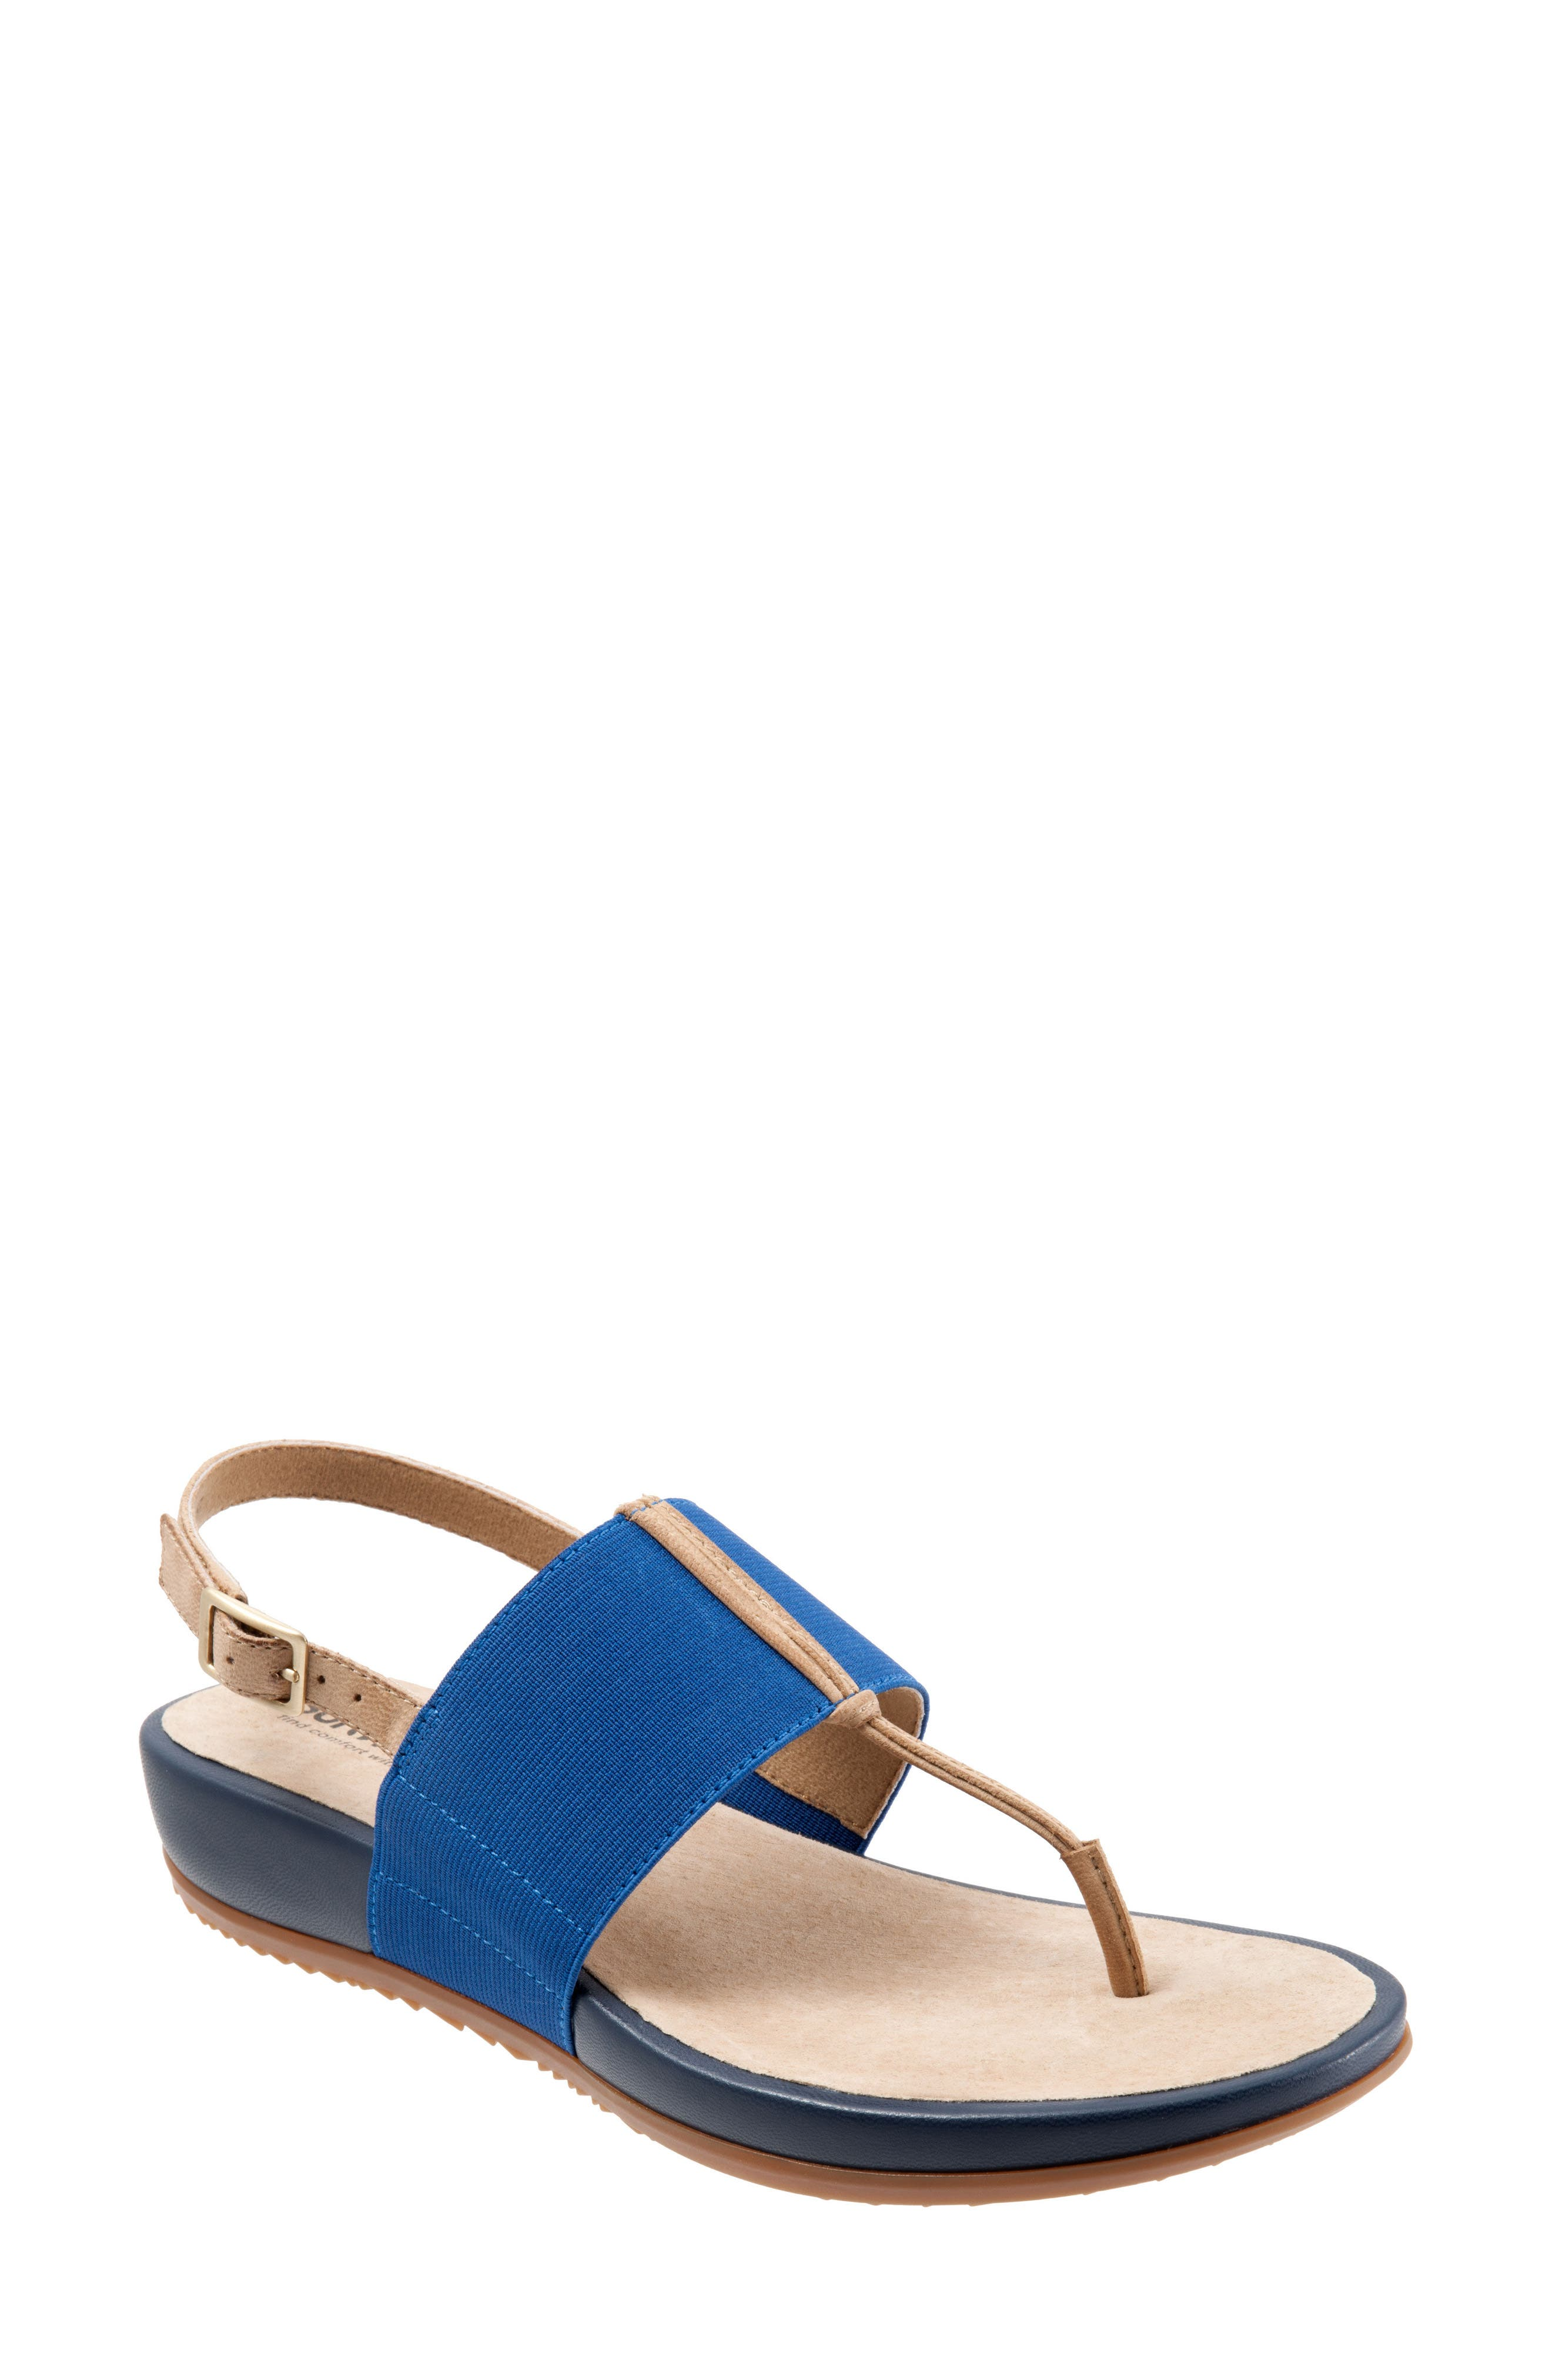 Daytona Sandal,                             Main thumbnail 1, color,                             Navy/ Tan Leather